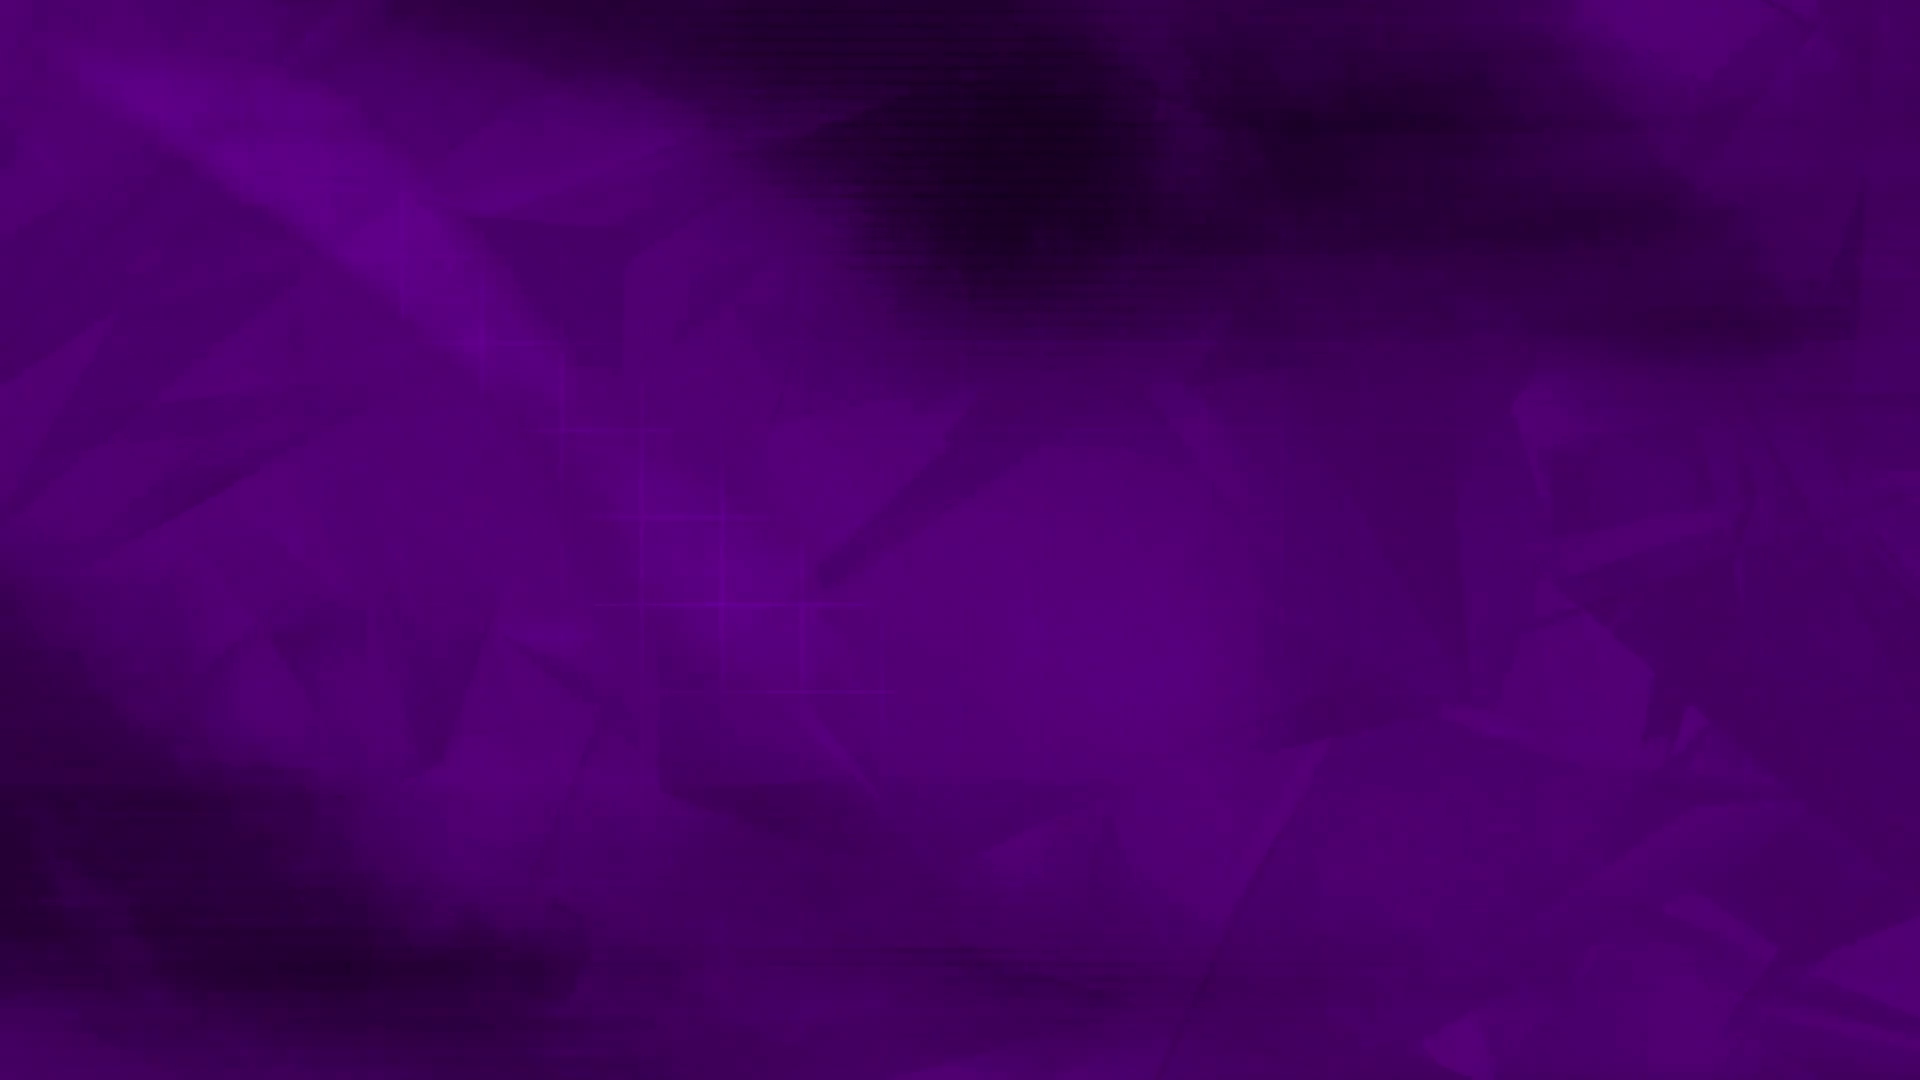 Looping darkness purple abstract CG animated background Motion ...